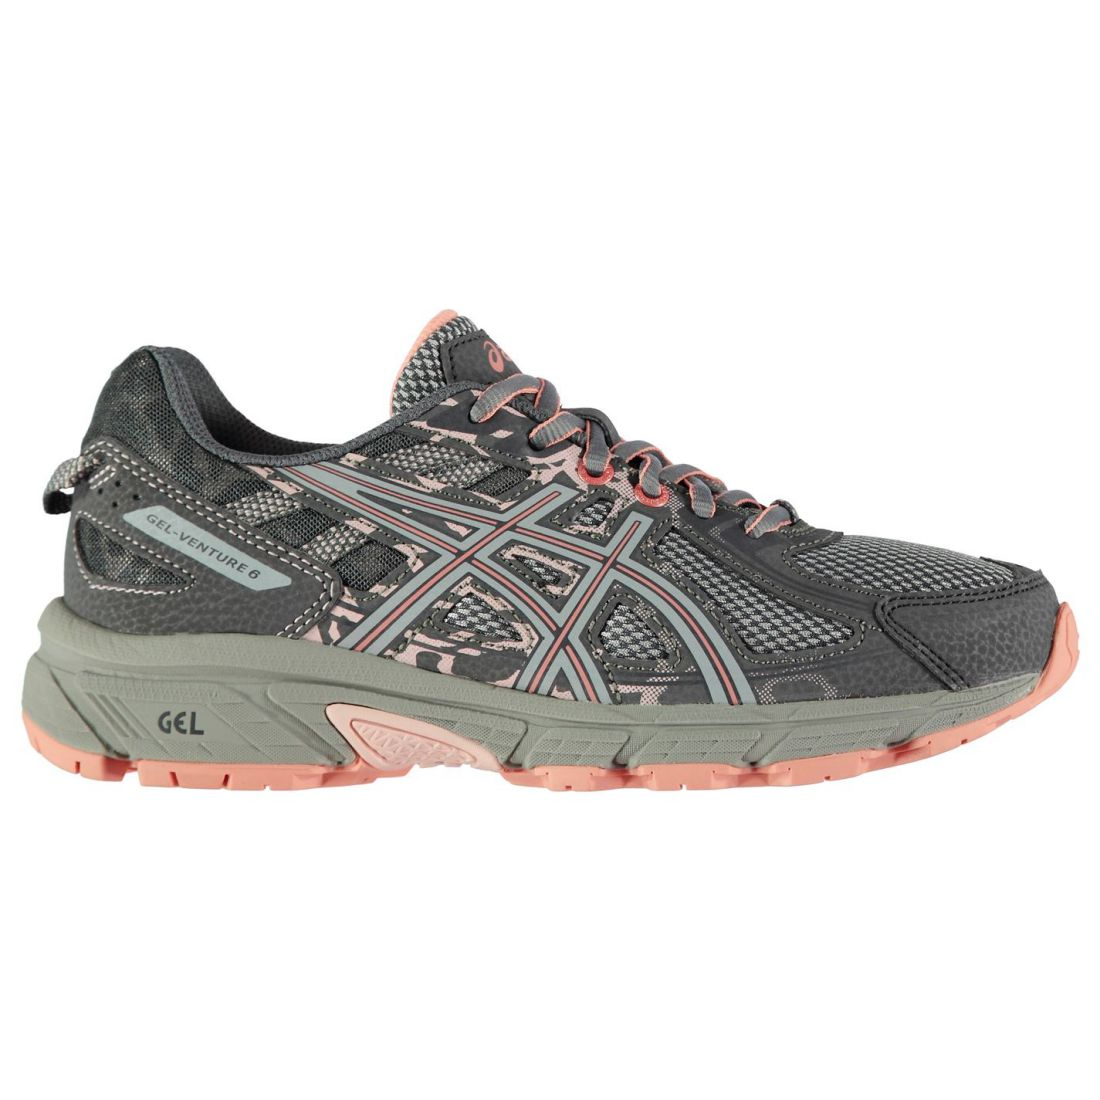 Asics GEL Venture  6 Trail Running shoes Ladies  the newest